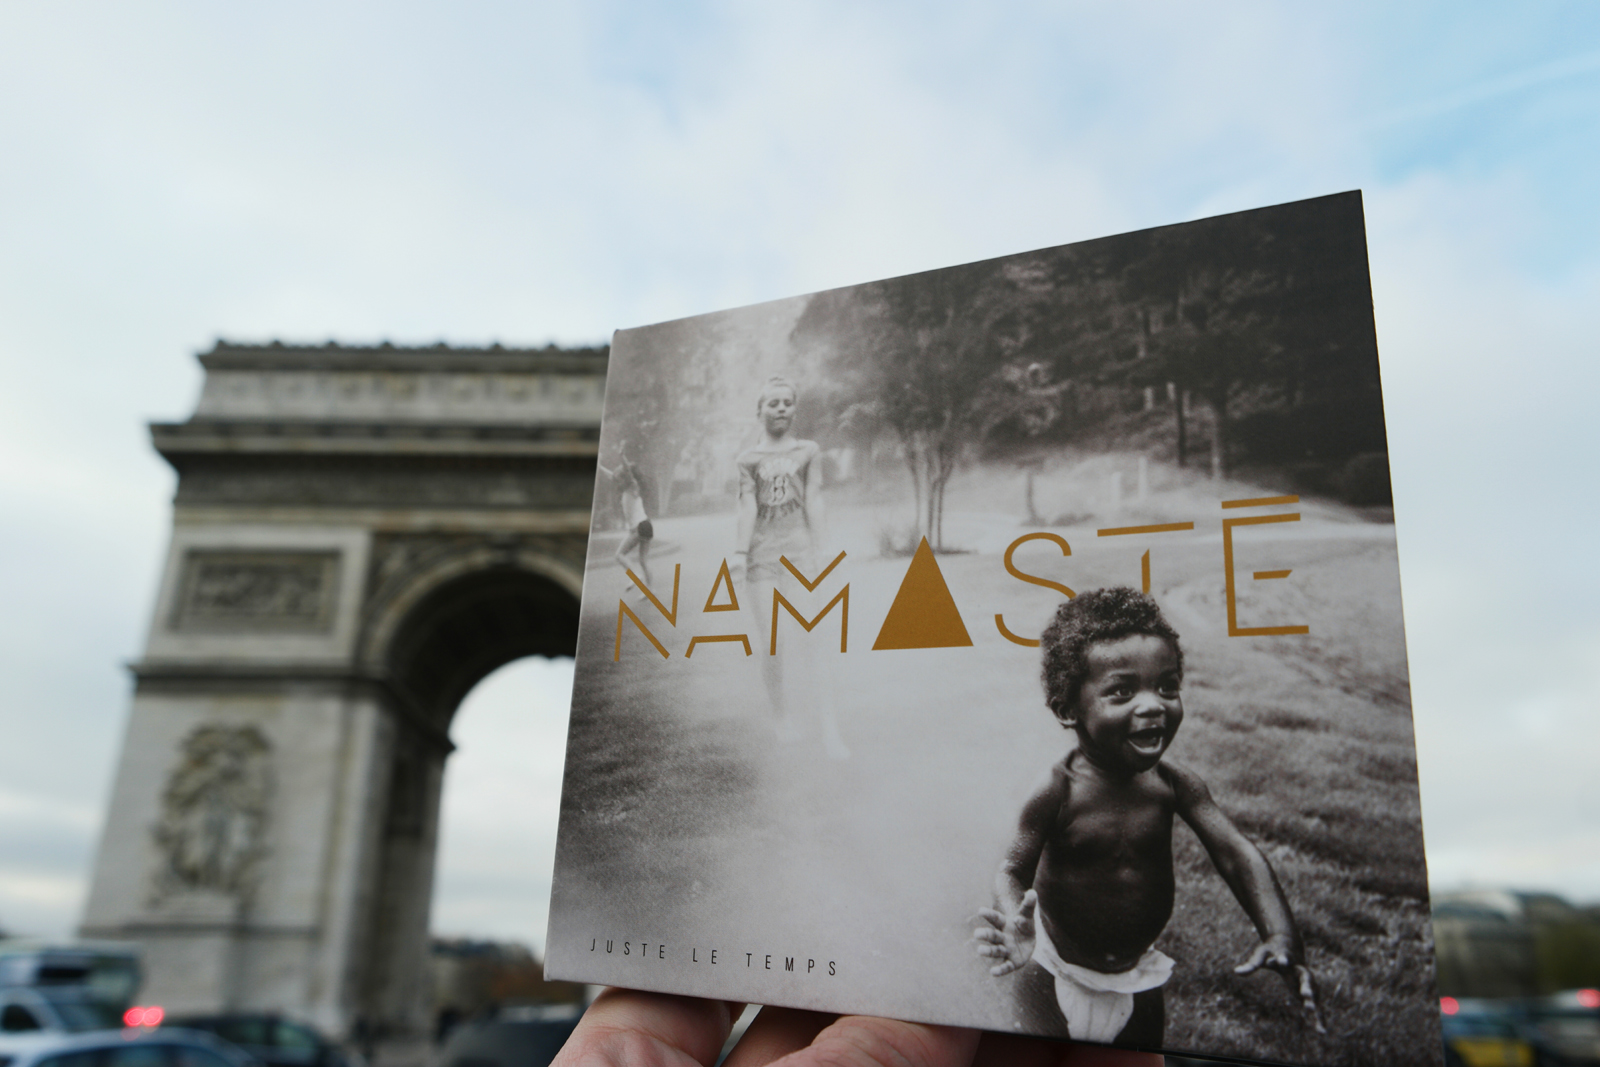 Pochette album Juste le temps du groupe Namasté wearenamaste musique photo united states of paris blog usofparis